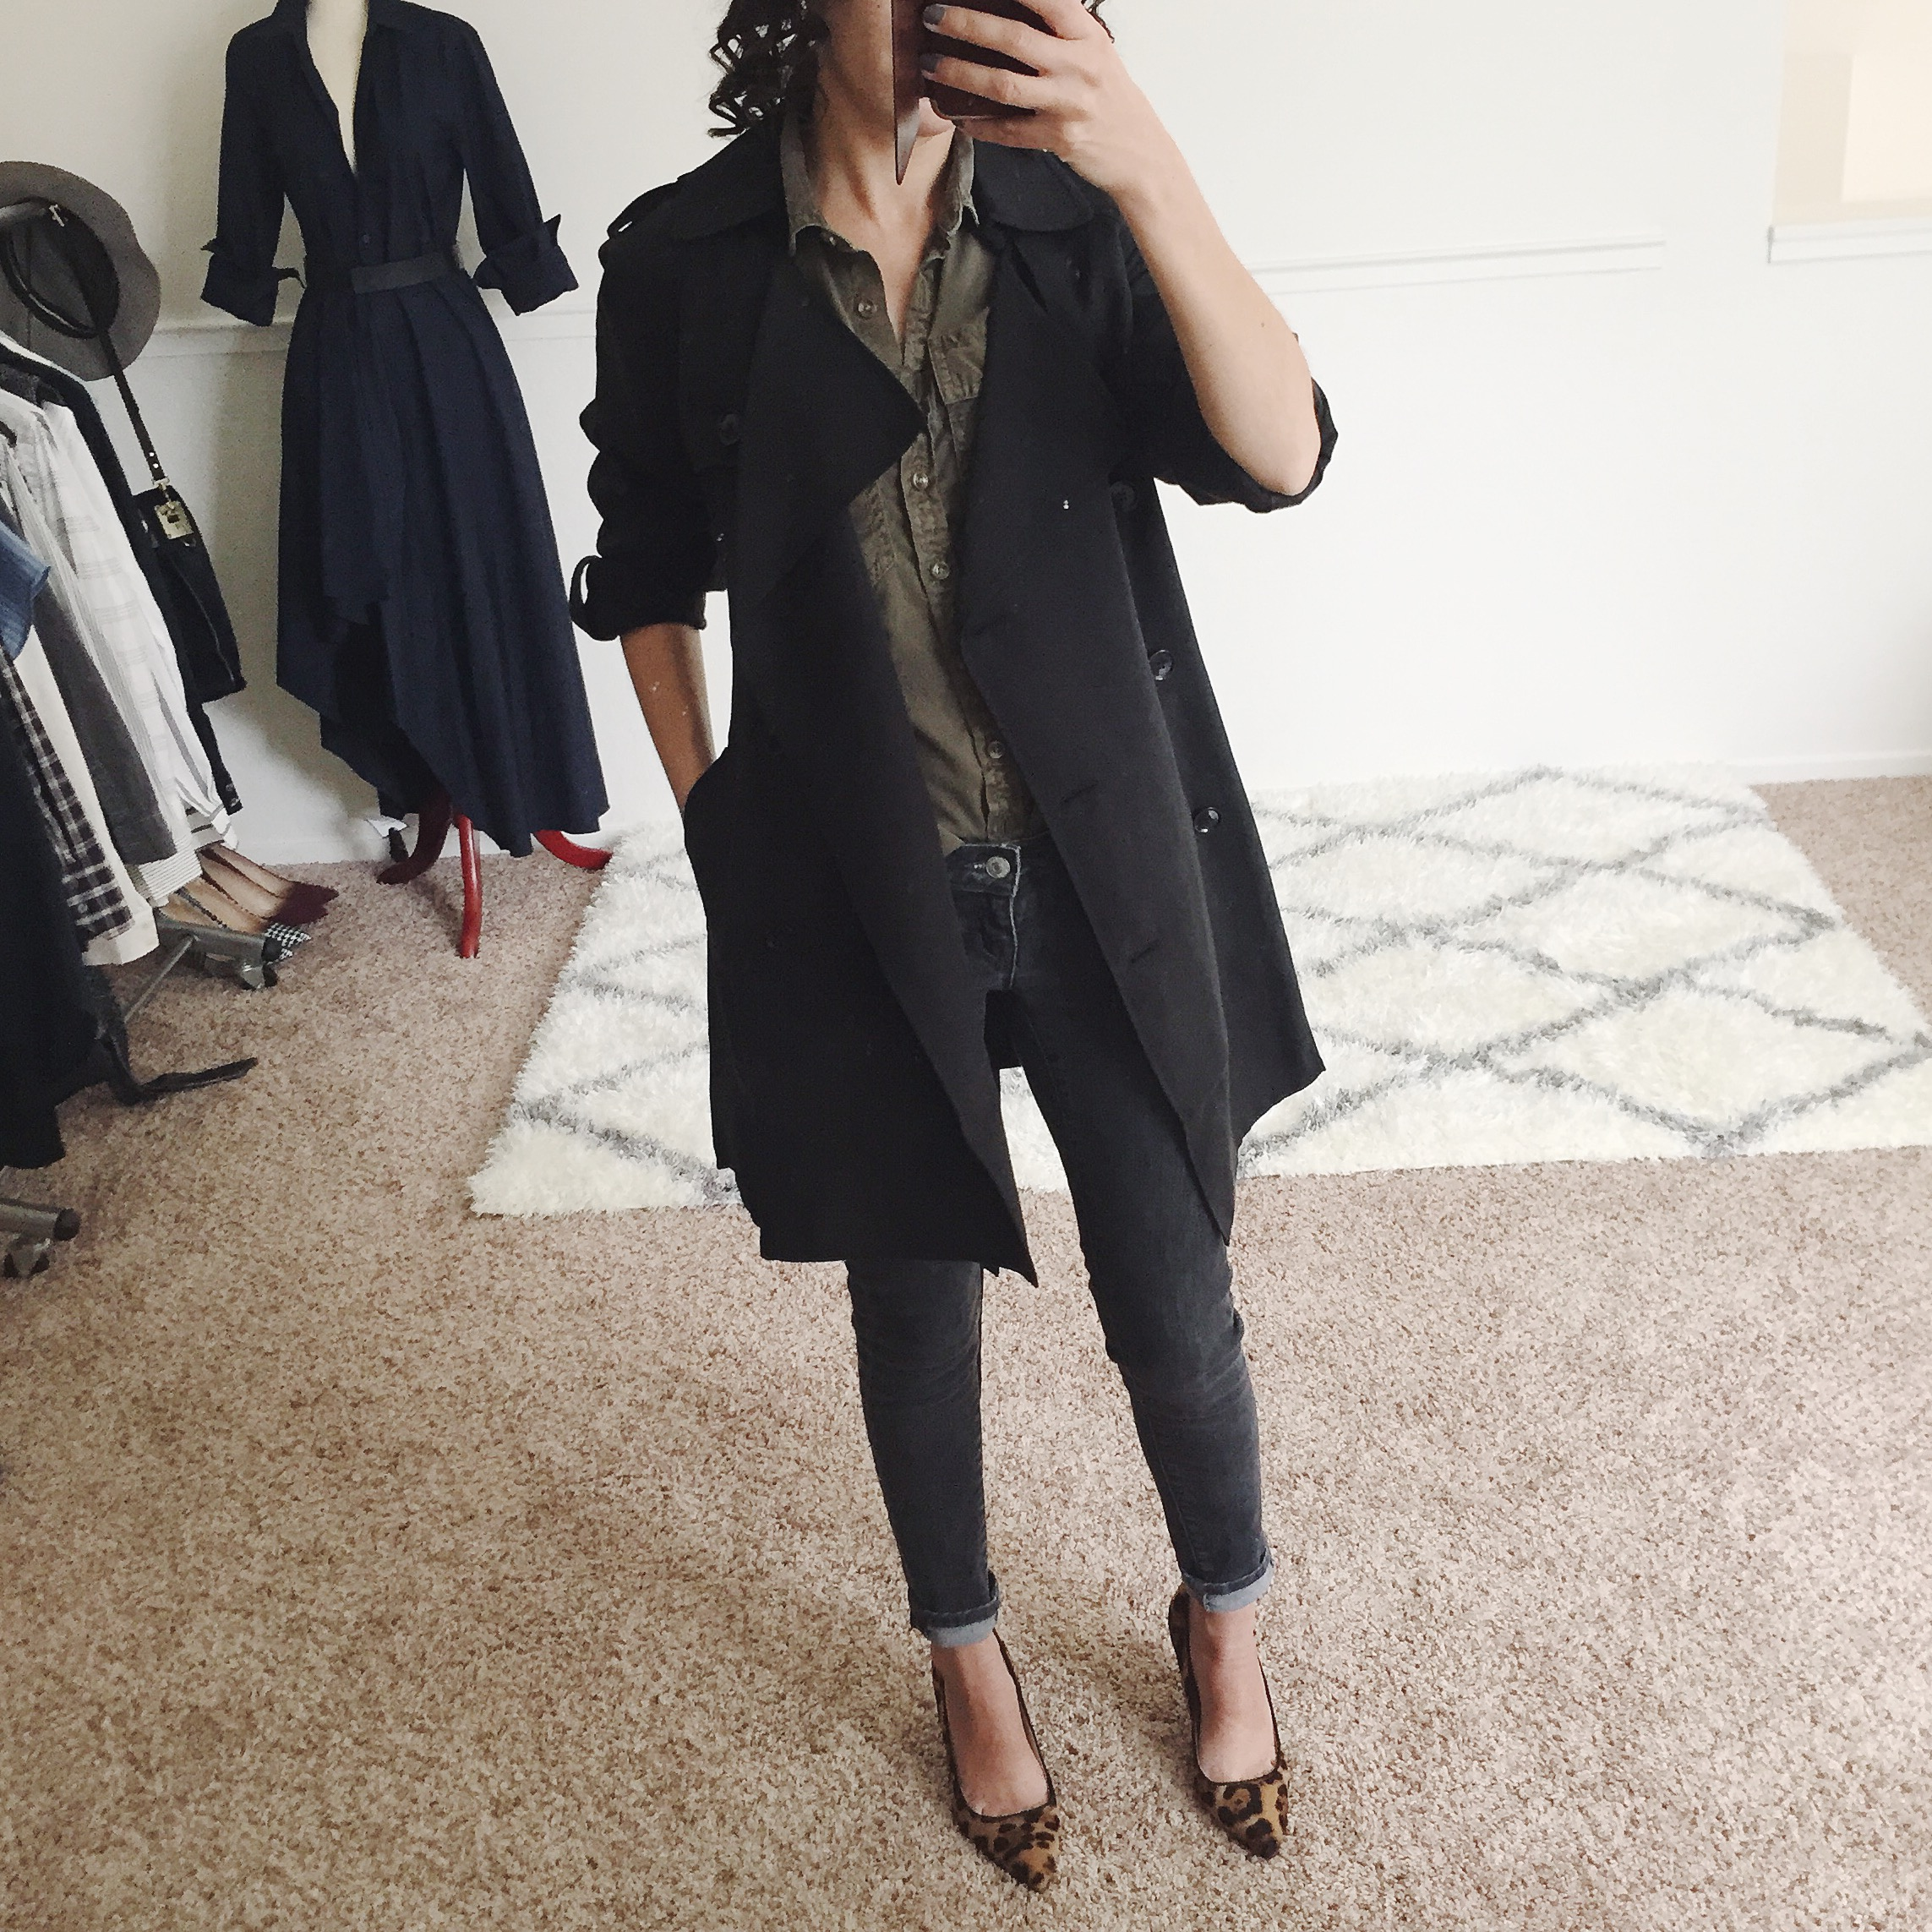 Fit Review Friday – Banana Republic Summer Items